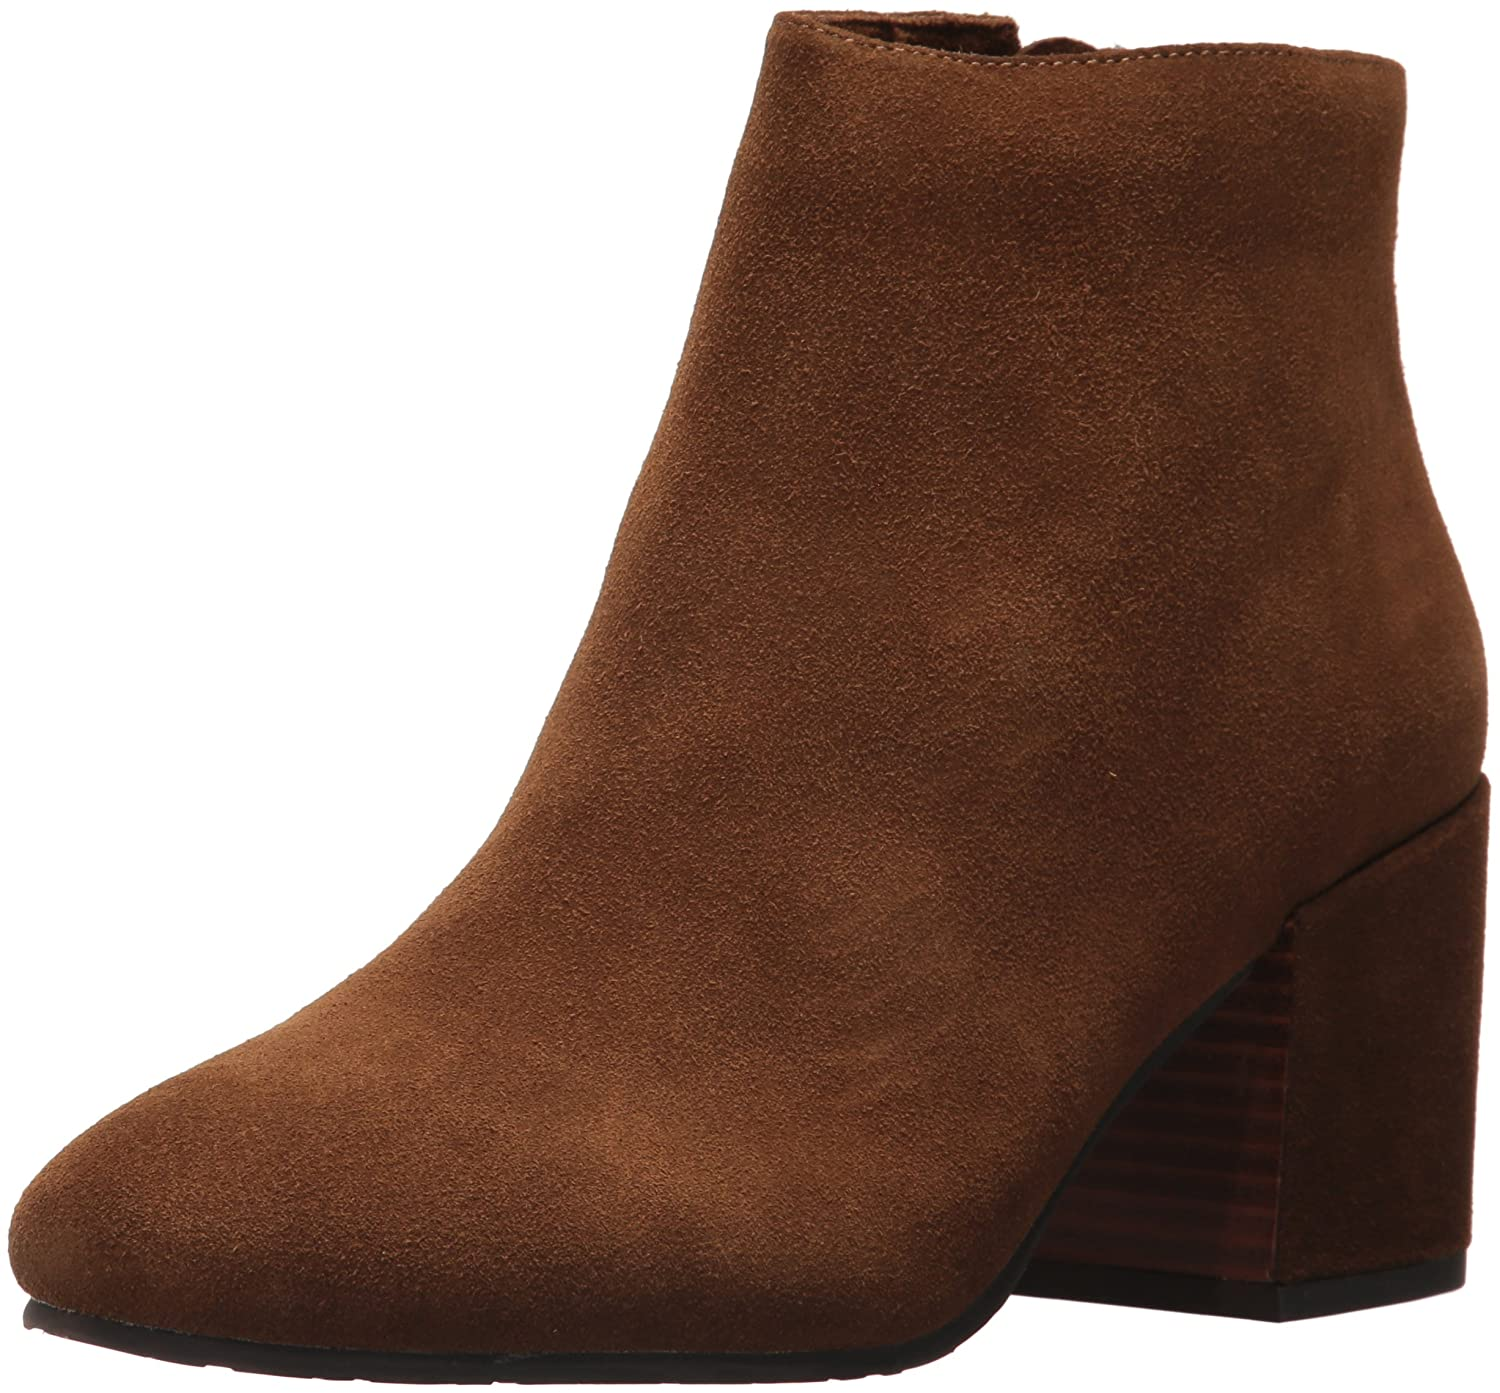 Gentle Souls by Kenneth Cole Women's Blaise Ankle Bootie with Side Zip, Covered Block Heel Suede Ankle Bootie B071HFR65Y 7.5 B(M) US|Walnut